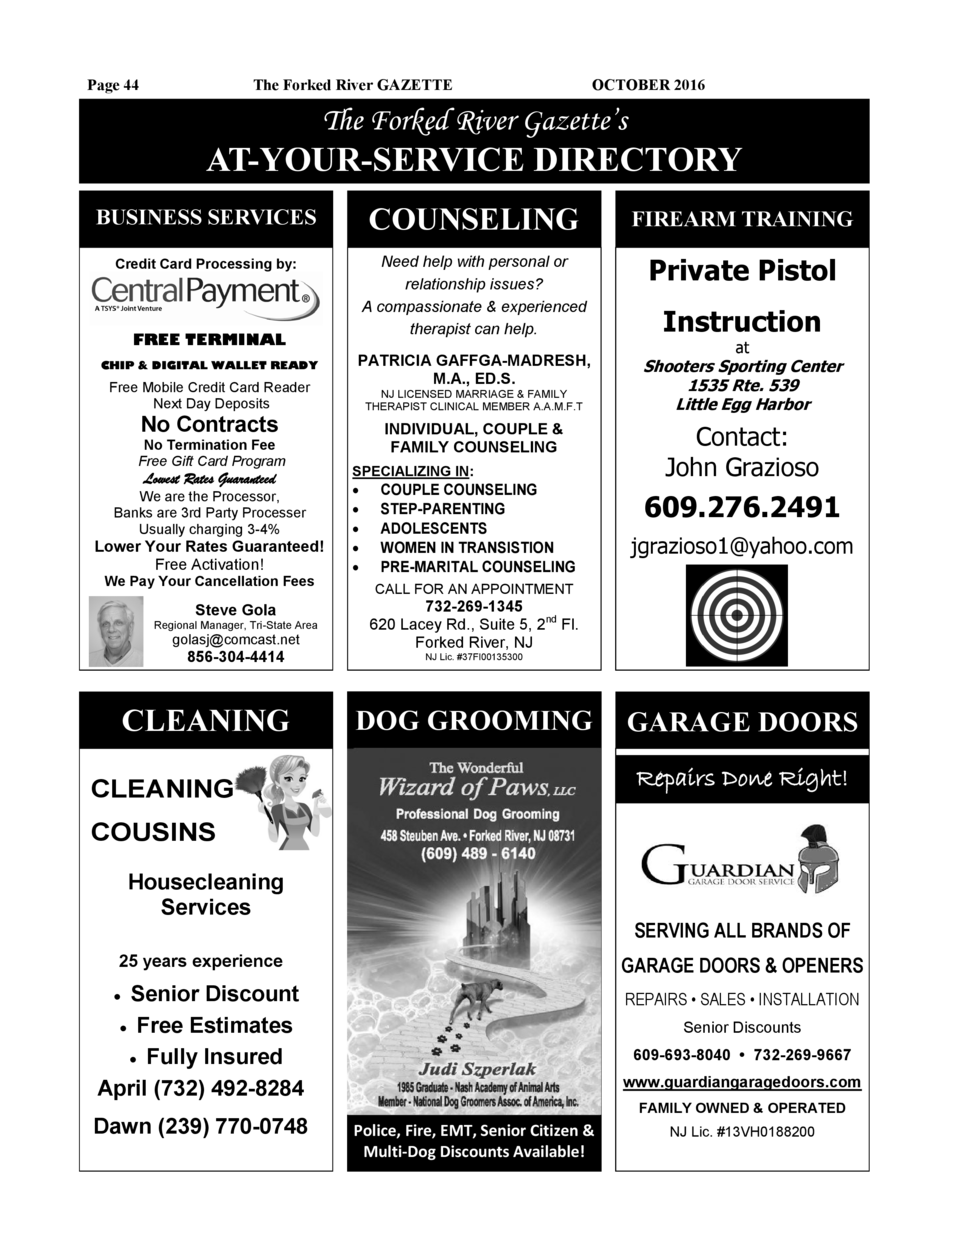 Page 44  The Forked River GAZETTE  OCTOBER 2016  The Forked River Gazette   s  AT-YOUR-SERVICE DIRECTORY BUSINESS SERVICES...